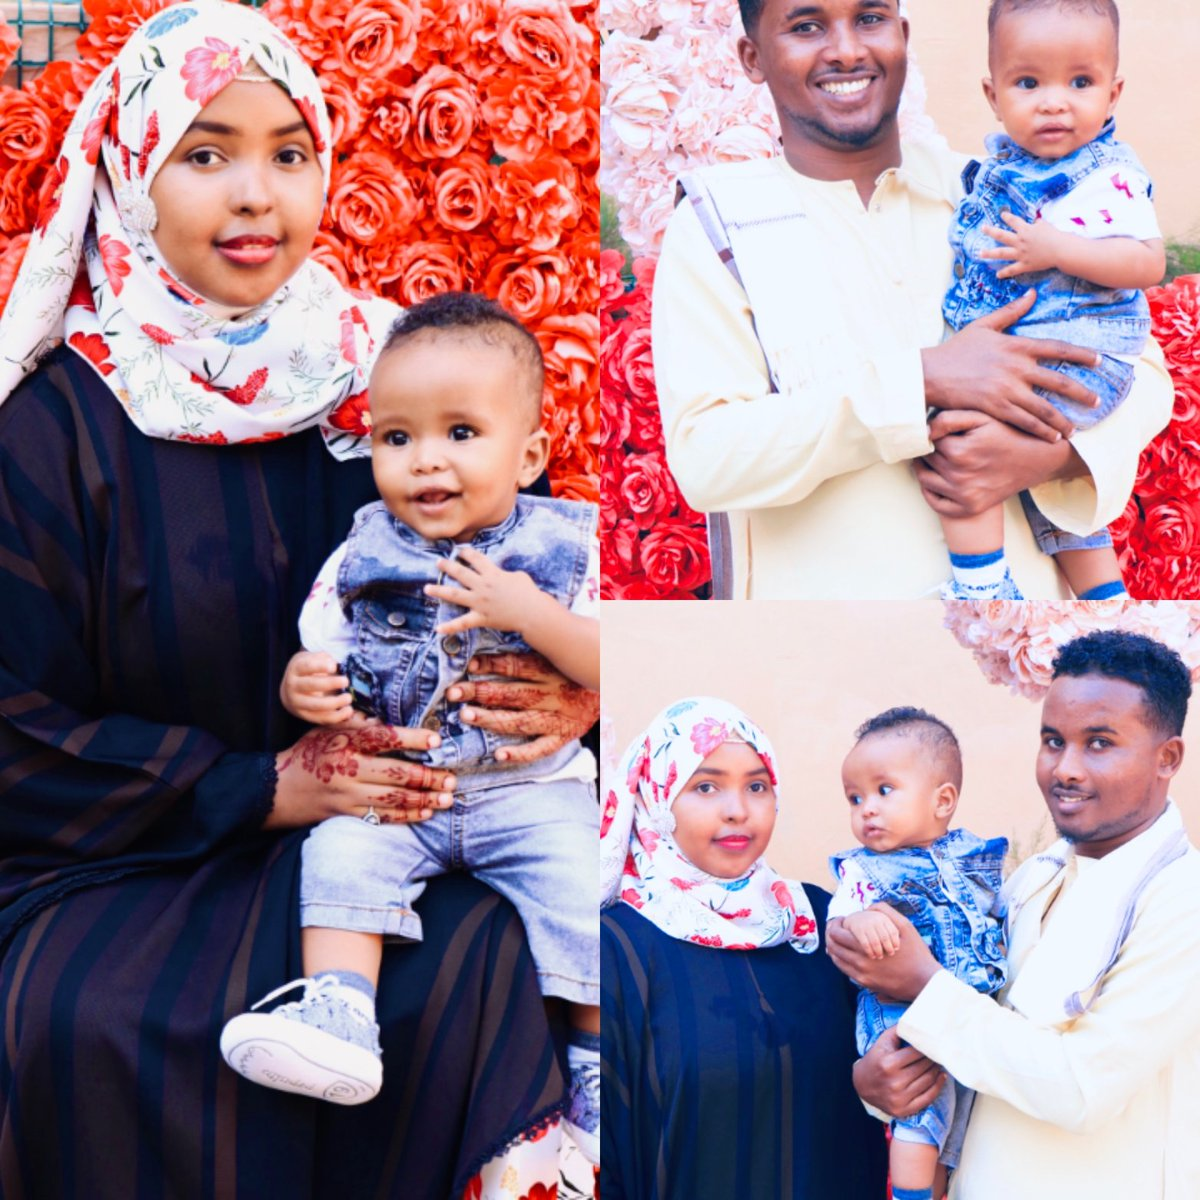 You are the reason why my life is so colorful each day. Let me make this Eid such a colorful one for you! Eid Mubarak my love!  @Somalia  #EidUlFitr  #HappyFamily pic.twitter.com/Lxok0cobjR